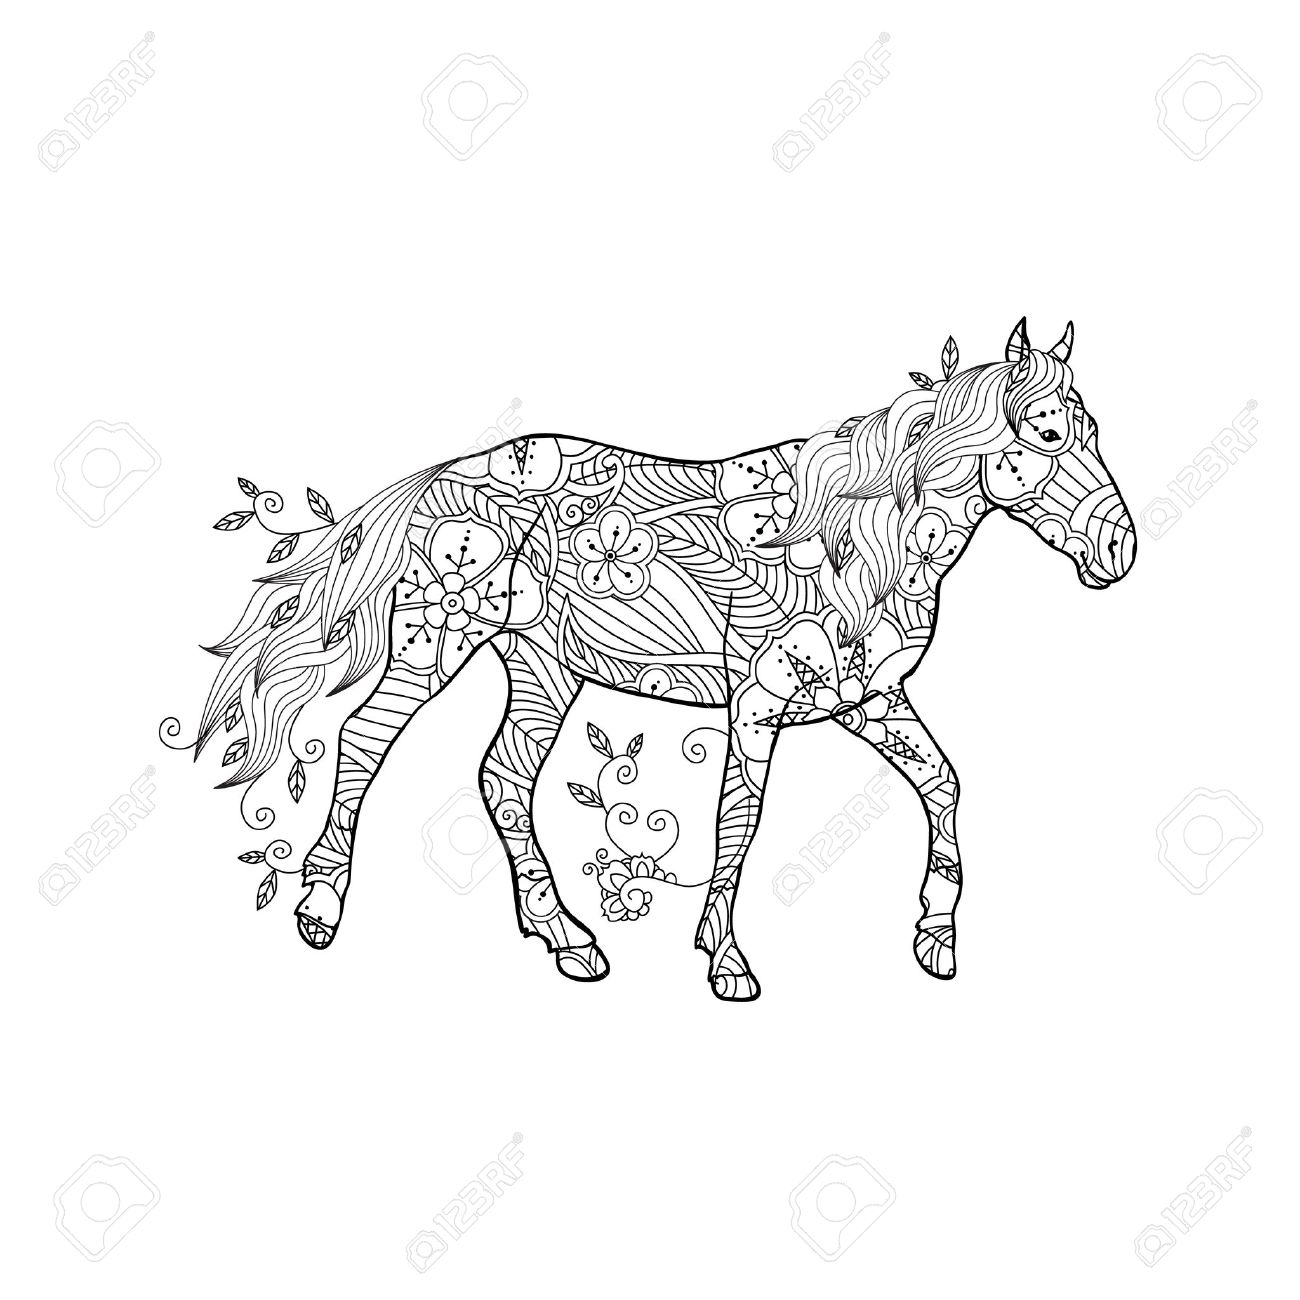 Coloring Page In Inspired Style Running Horse Ornate By Flowers And Leaves Isolated On White